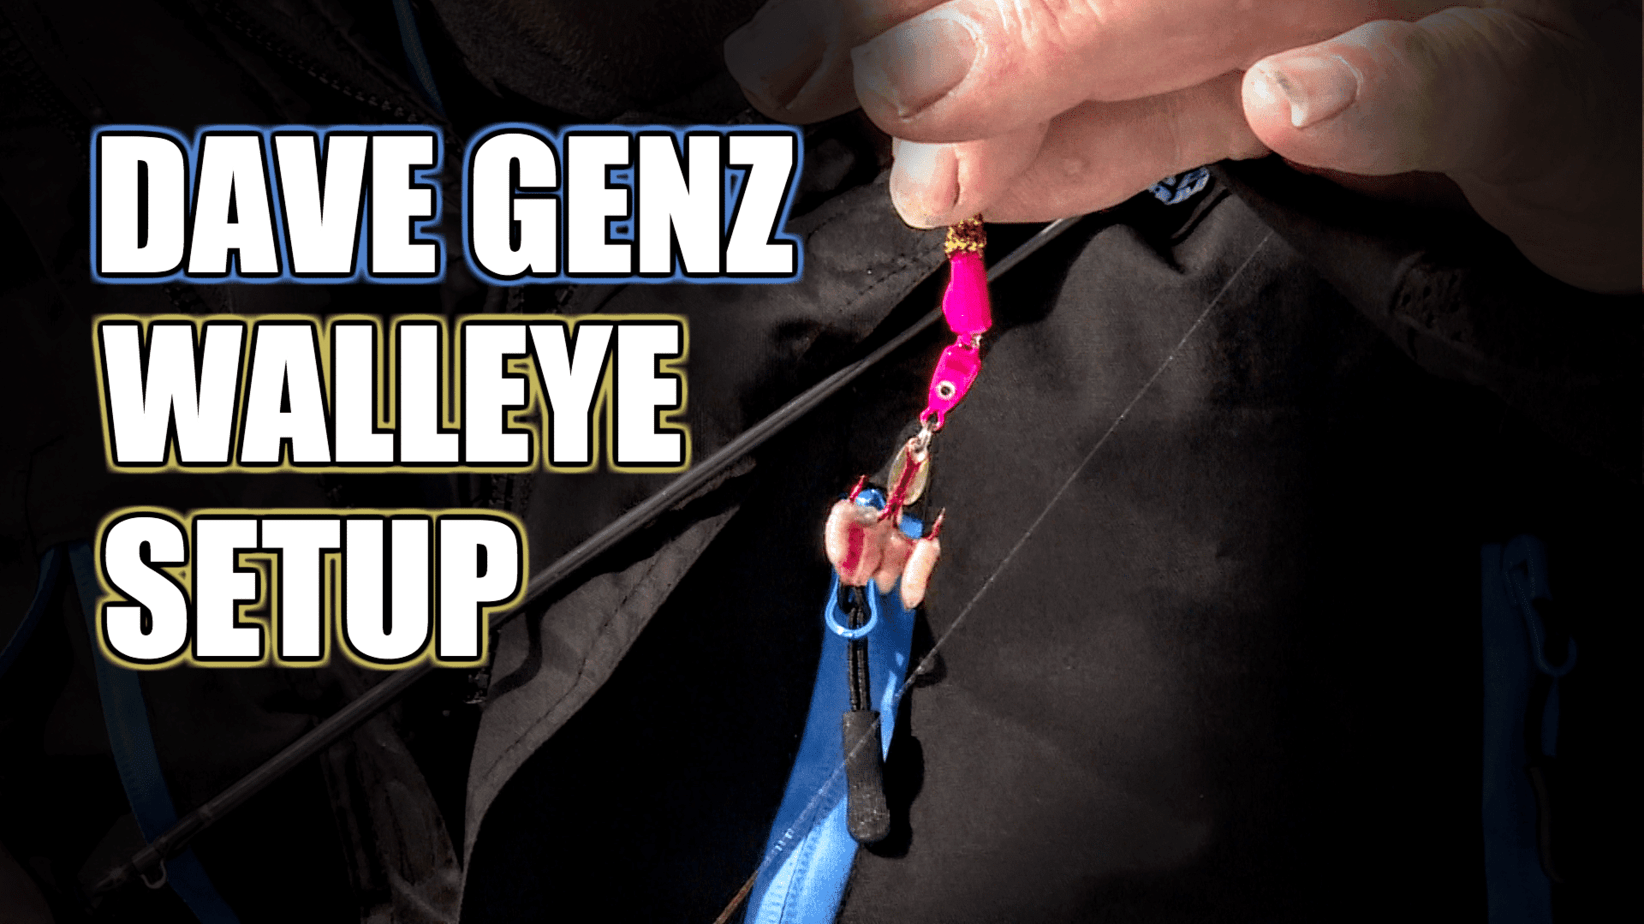 Dave Genz Walleye Setup